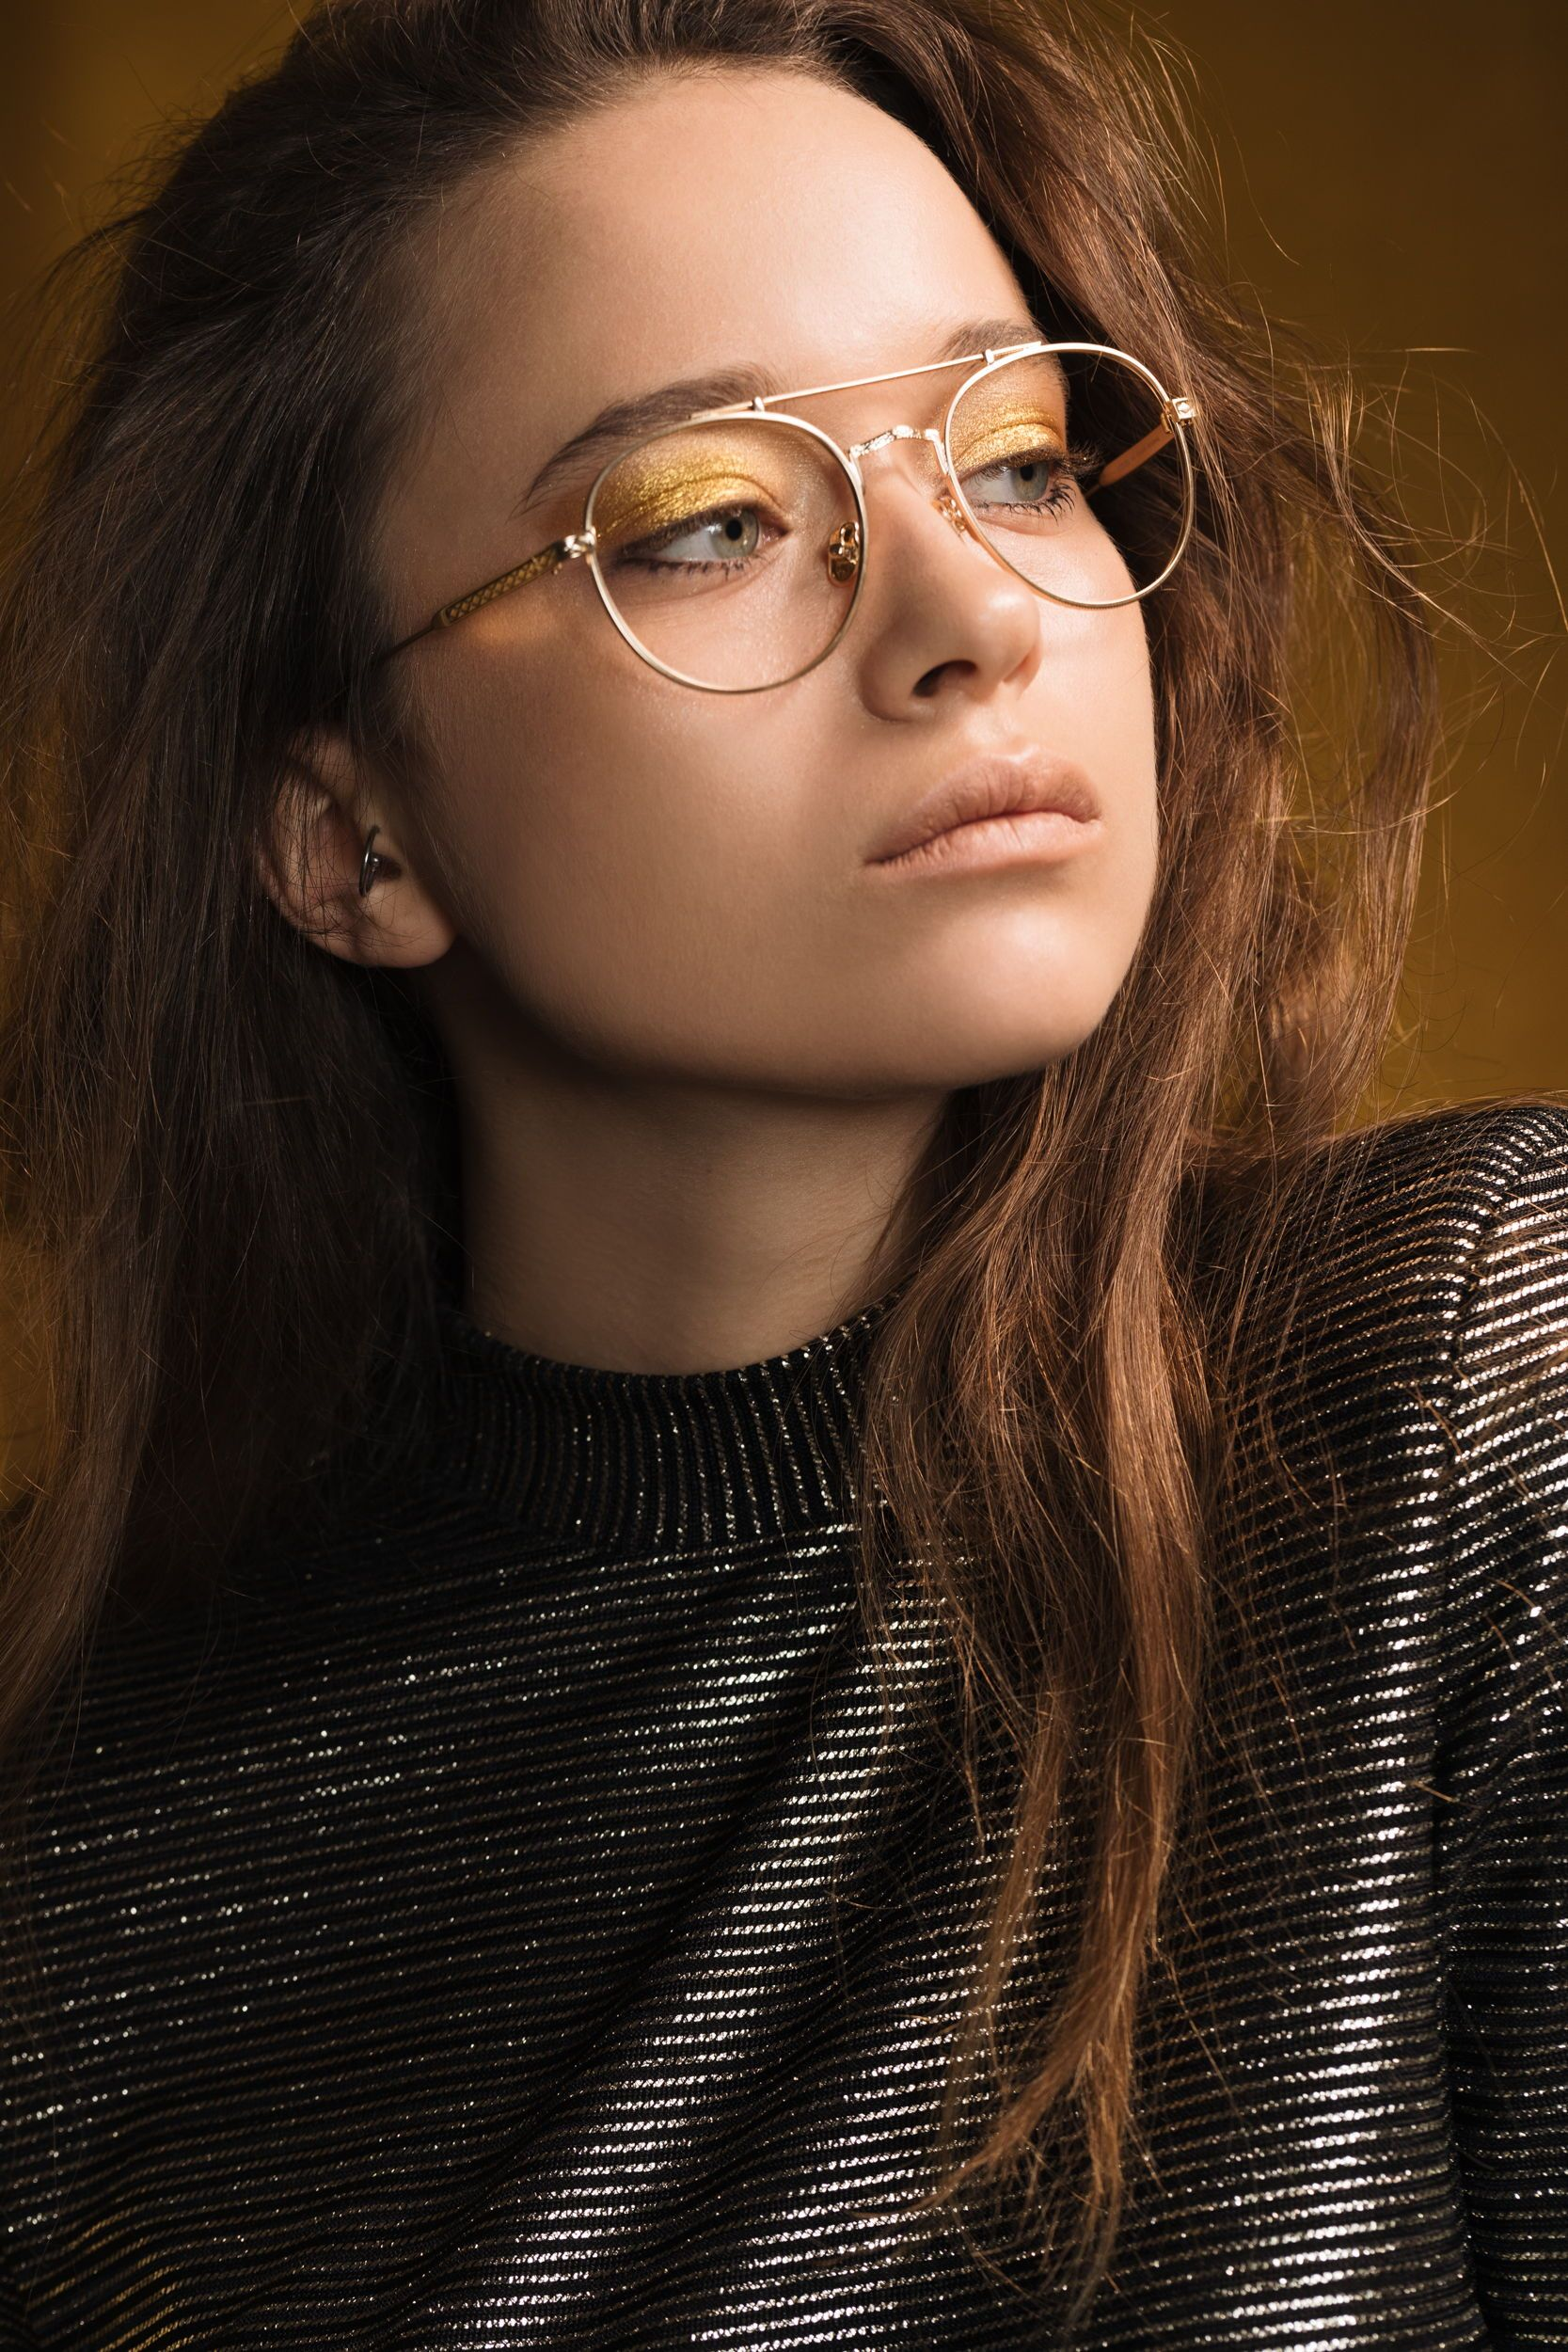 e6bb7e5bc37 The one-stop-shop for all your eyewear needs. WE offer thousands of frames  at affordable prices